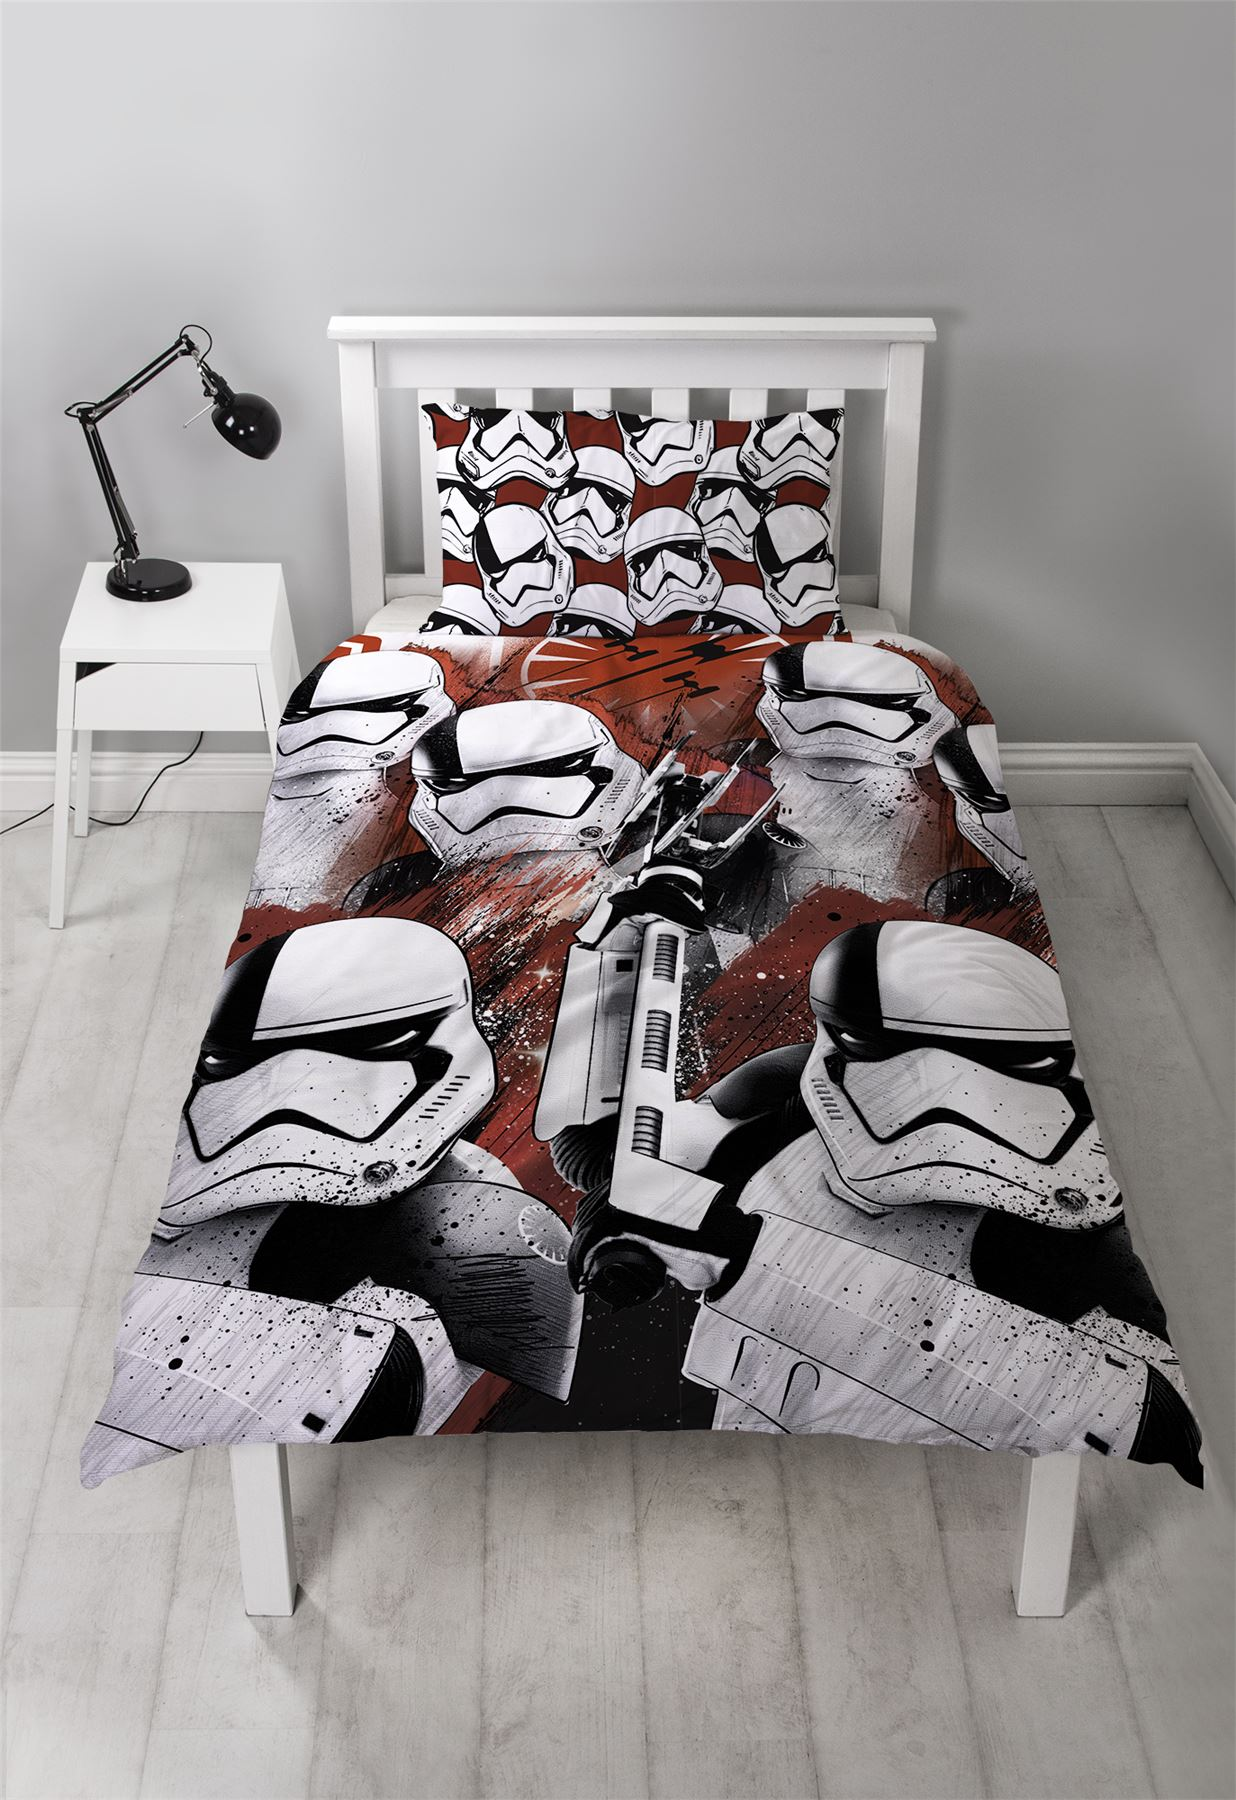 Official-Star-Wars-Licensed-Duvet-Covers-Single-Double-Jedi-Darth-Vader-Lego thumbnail 52